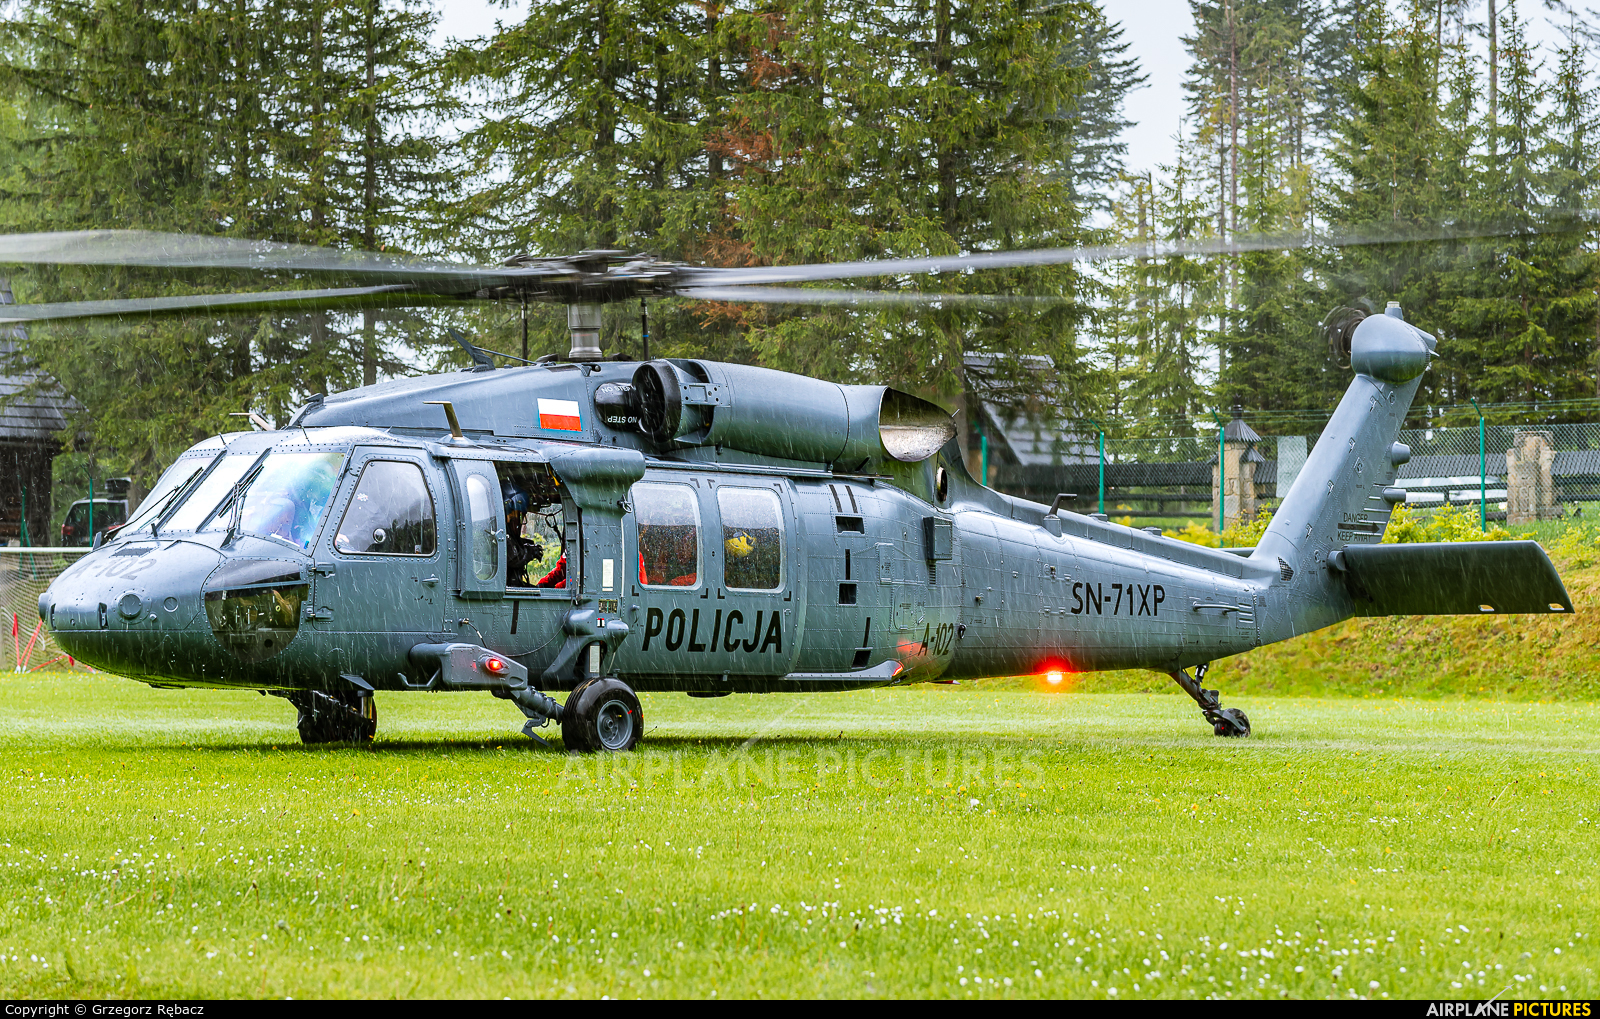 Poland - Police SN-71XP aircraft at Undisclosed location